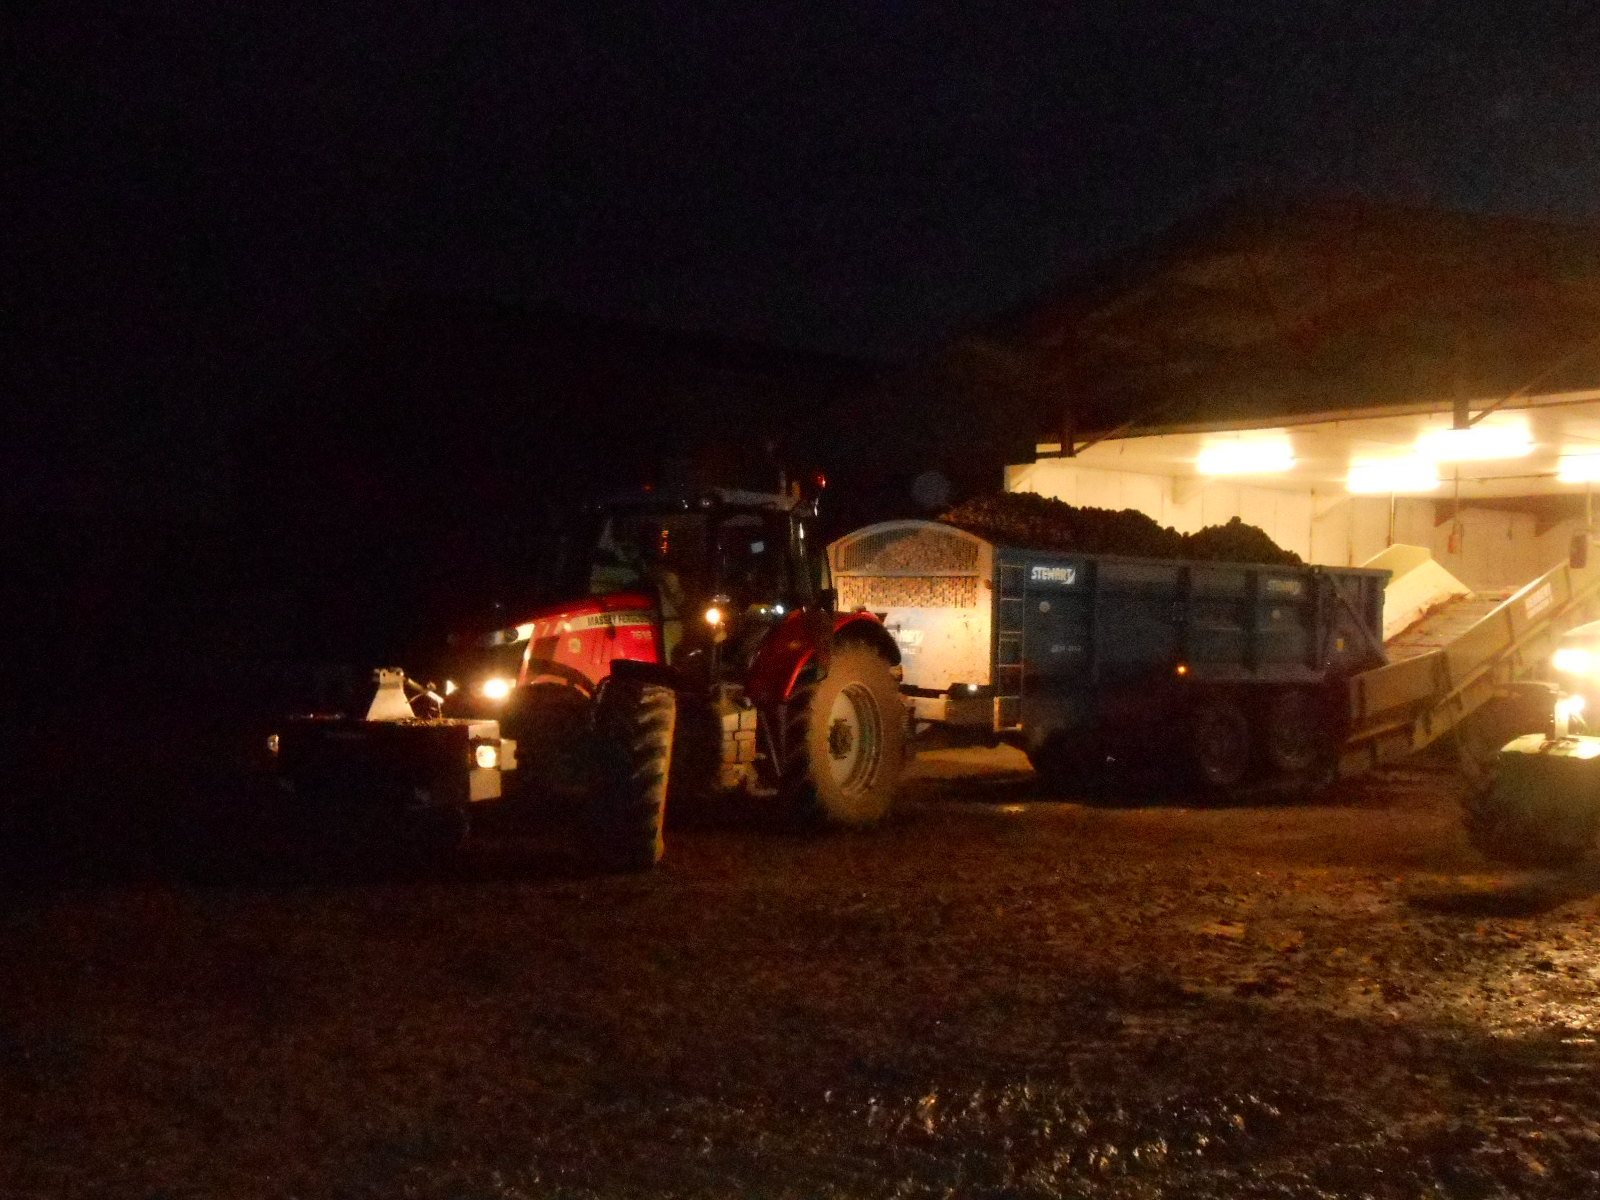 Night work on potatoes